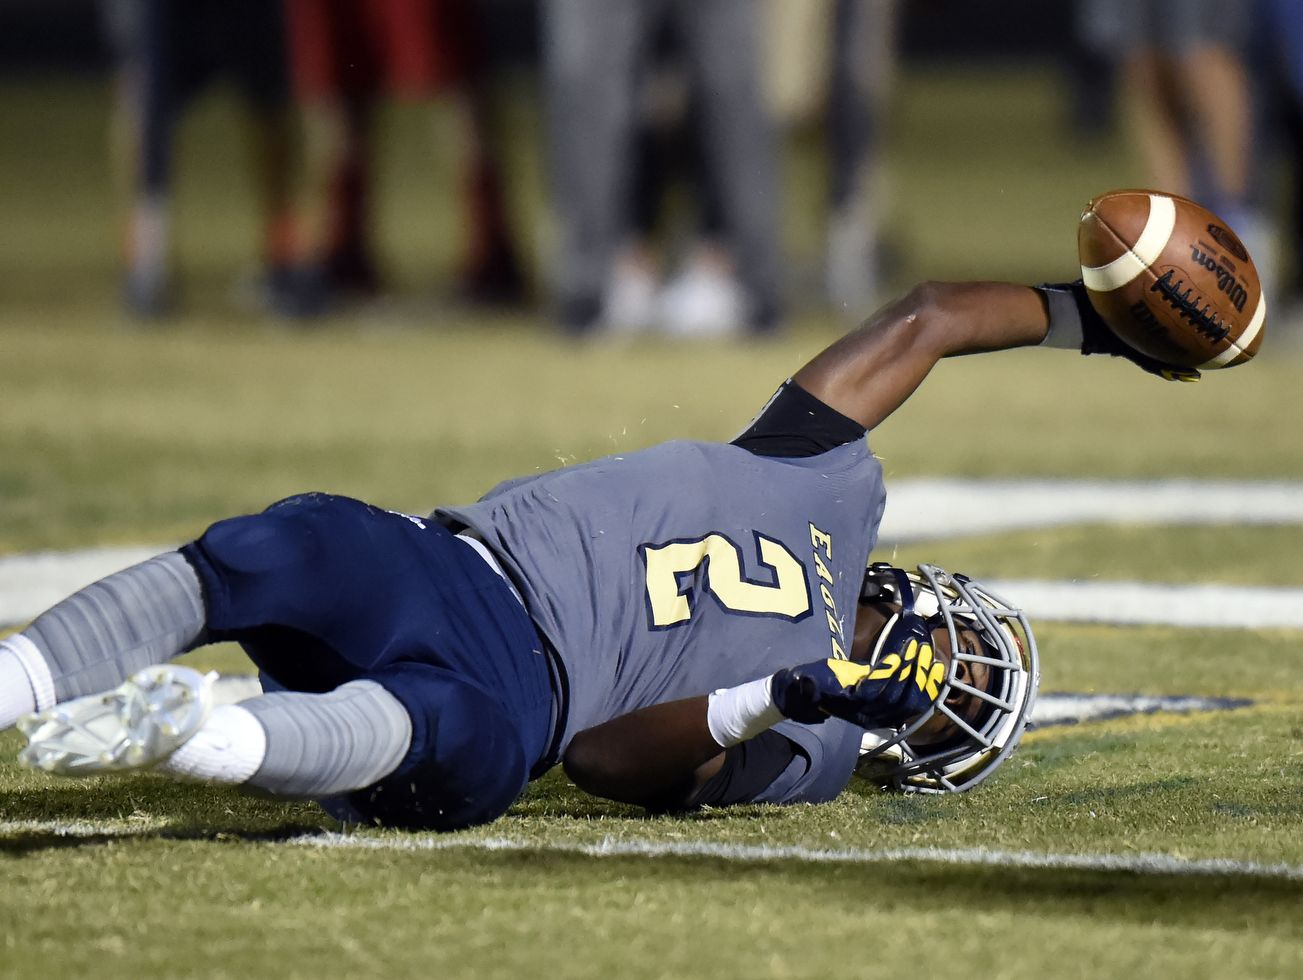 Independence wide receiver T.J. Sheffield (2) lies on the ground after catching a touchdown pass against Gallatin during the first of an high school football playoff game on Friday, Nov. 4, 2016, in Thompson's Station, Tenn.